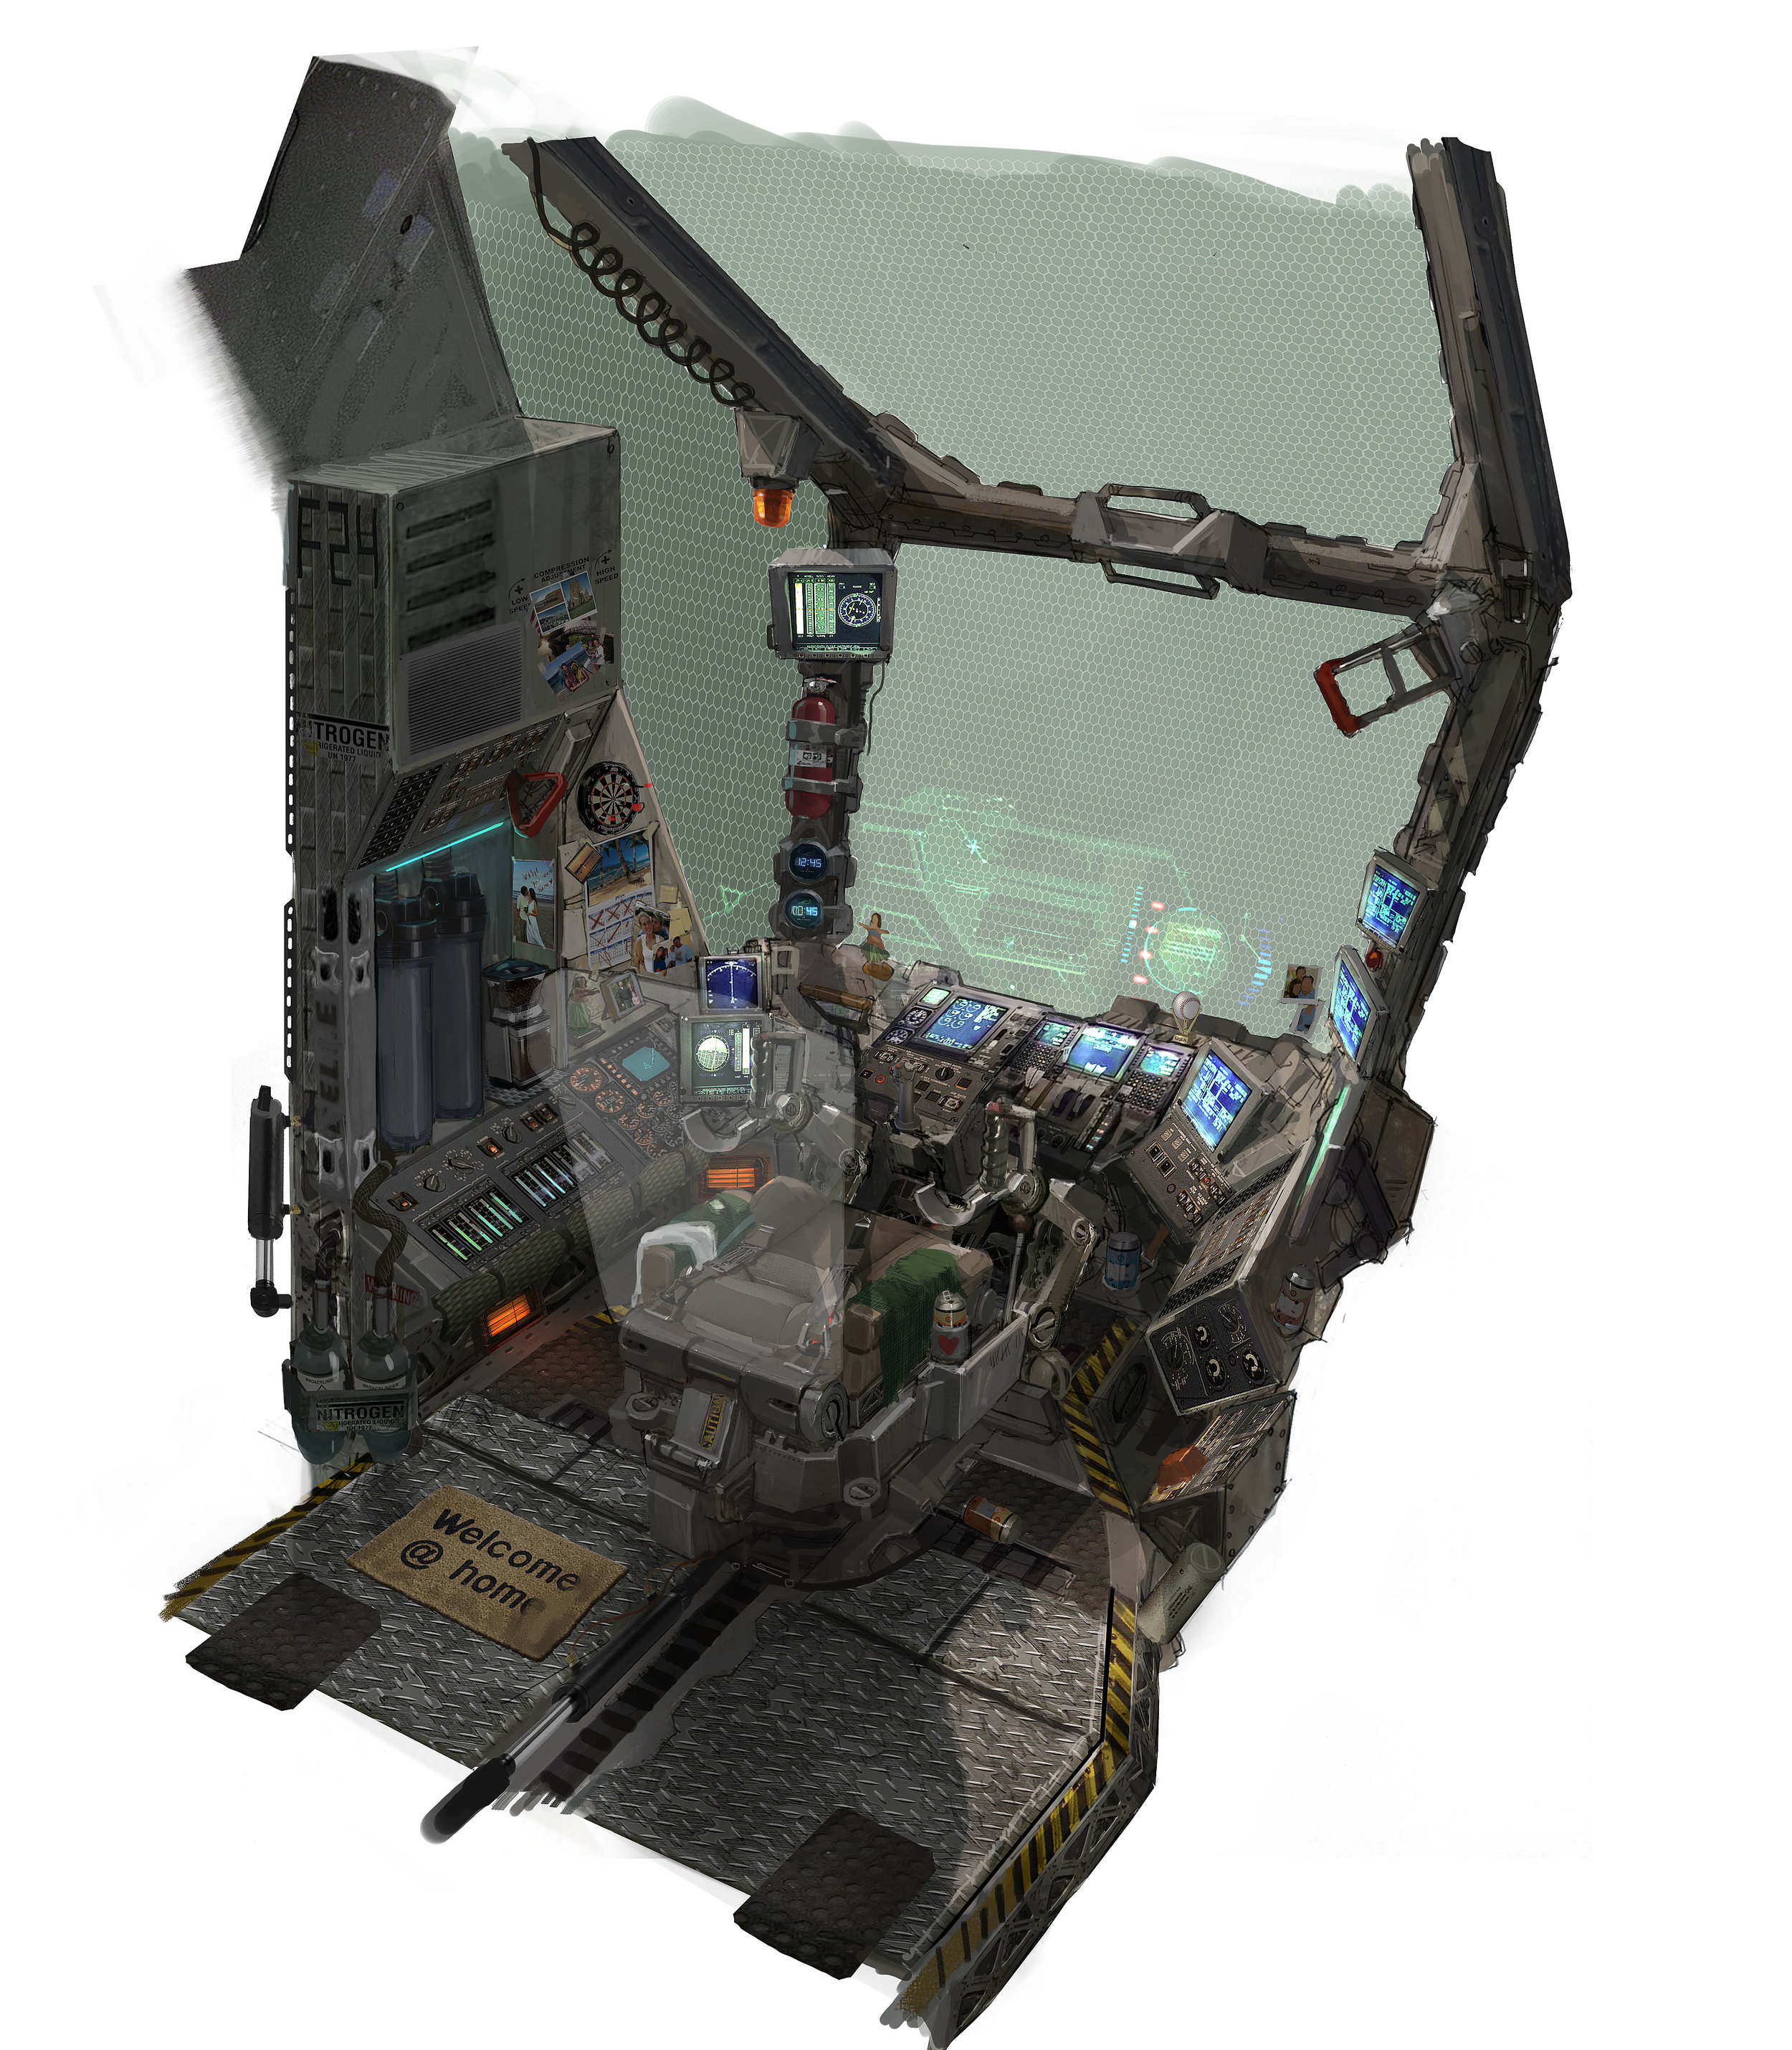 mech_interior_revision_02.jpg